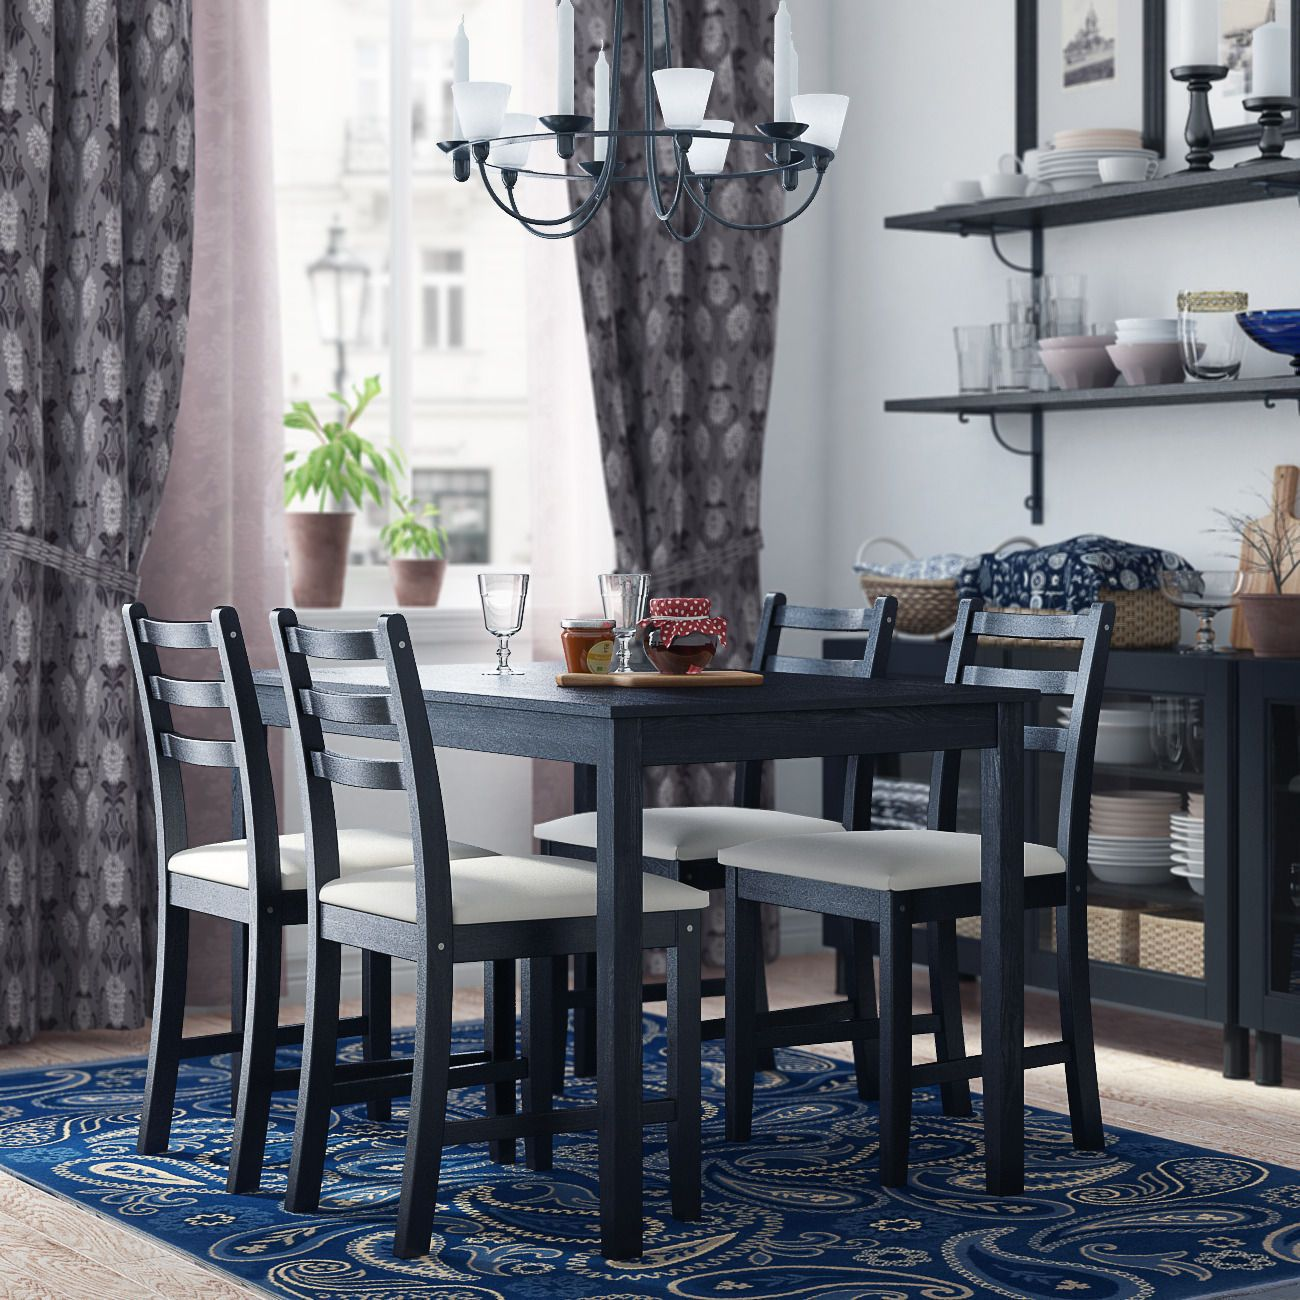 'lerhamn dining room'cgmobile you can buy this 3d